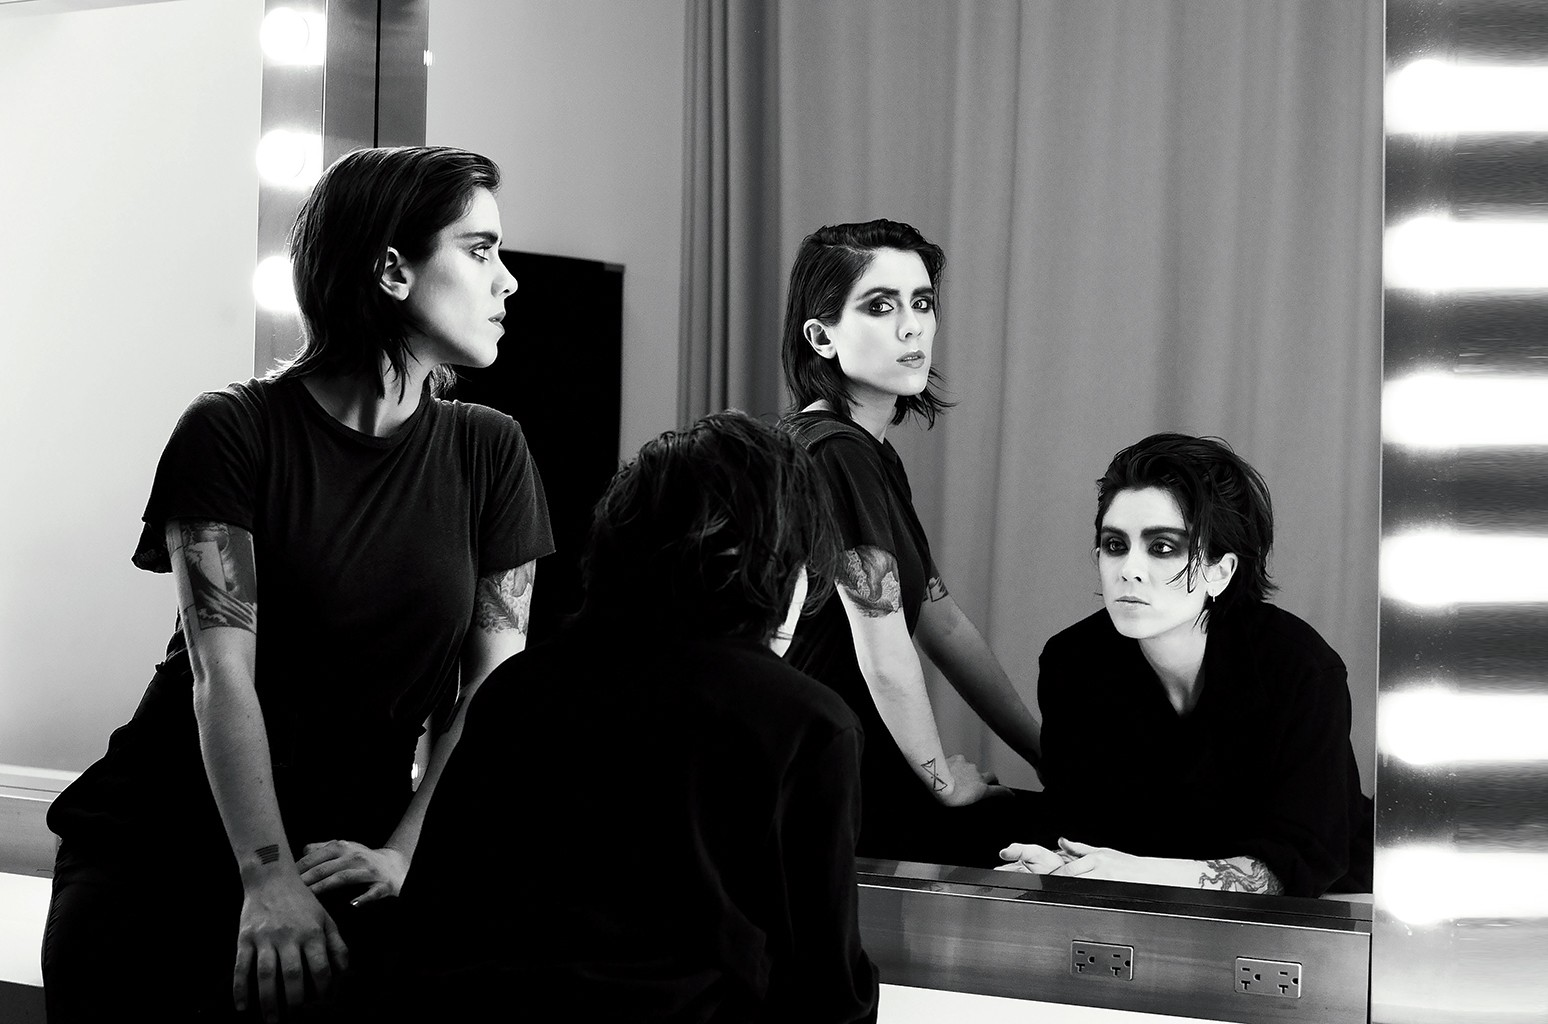 Twin sisters Tegan (right) and Sara Quin's Heartthrob debuted at No. 3 on the Billboard 200 in 2013.